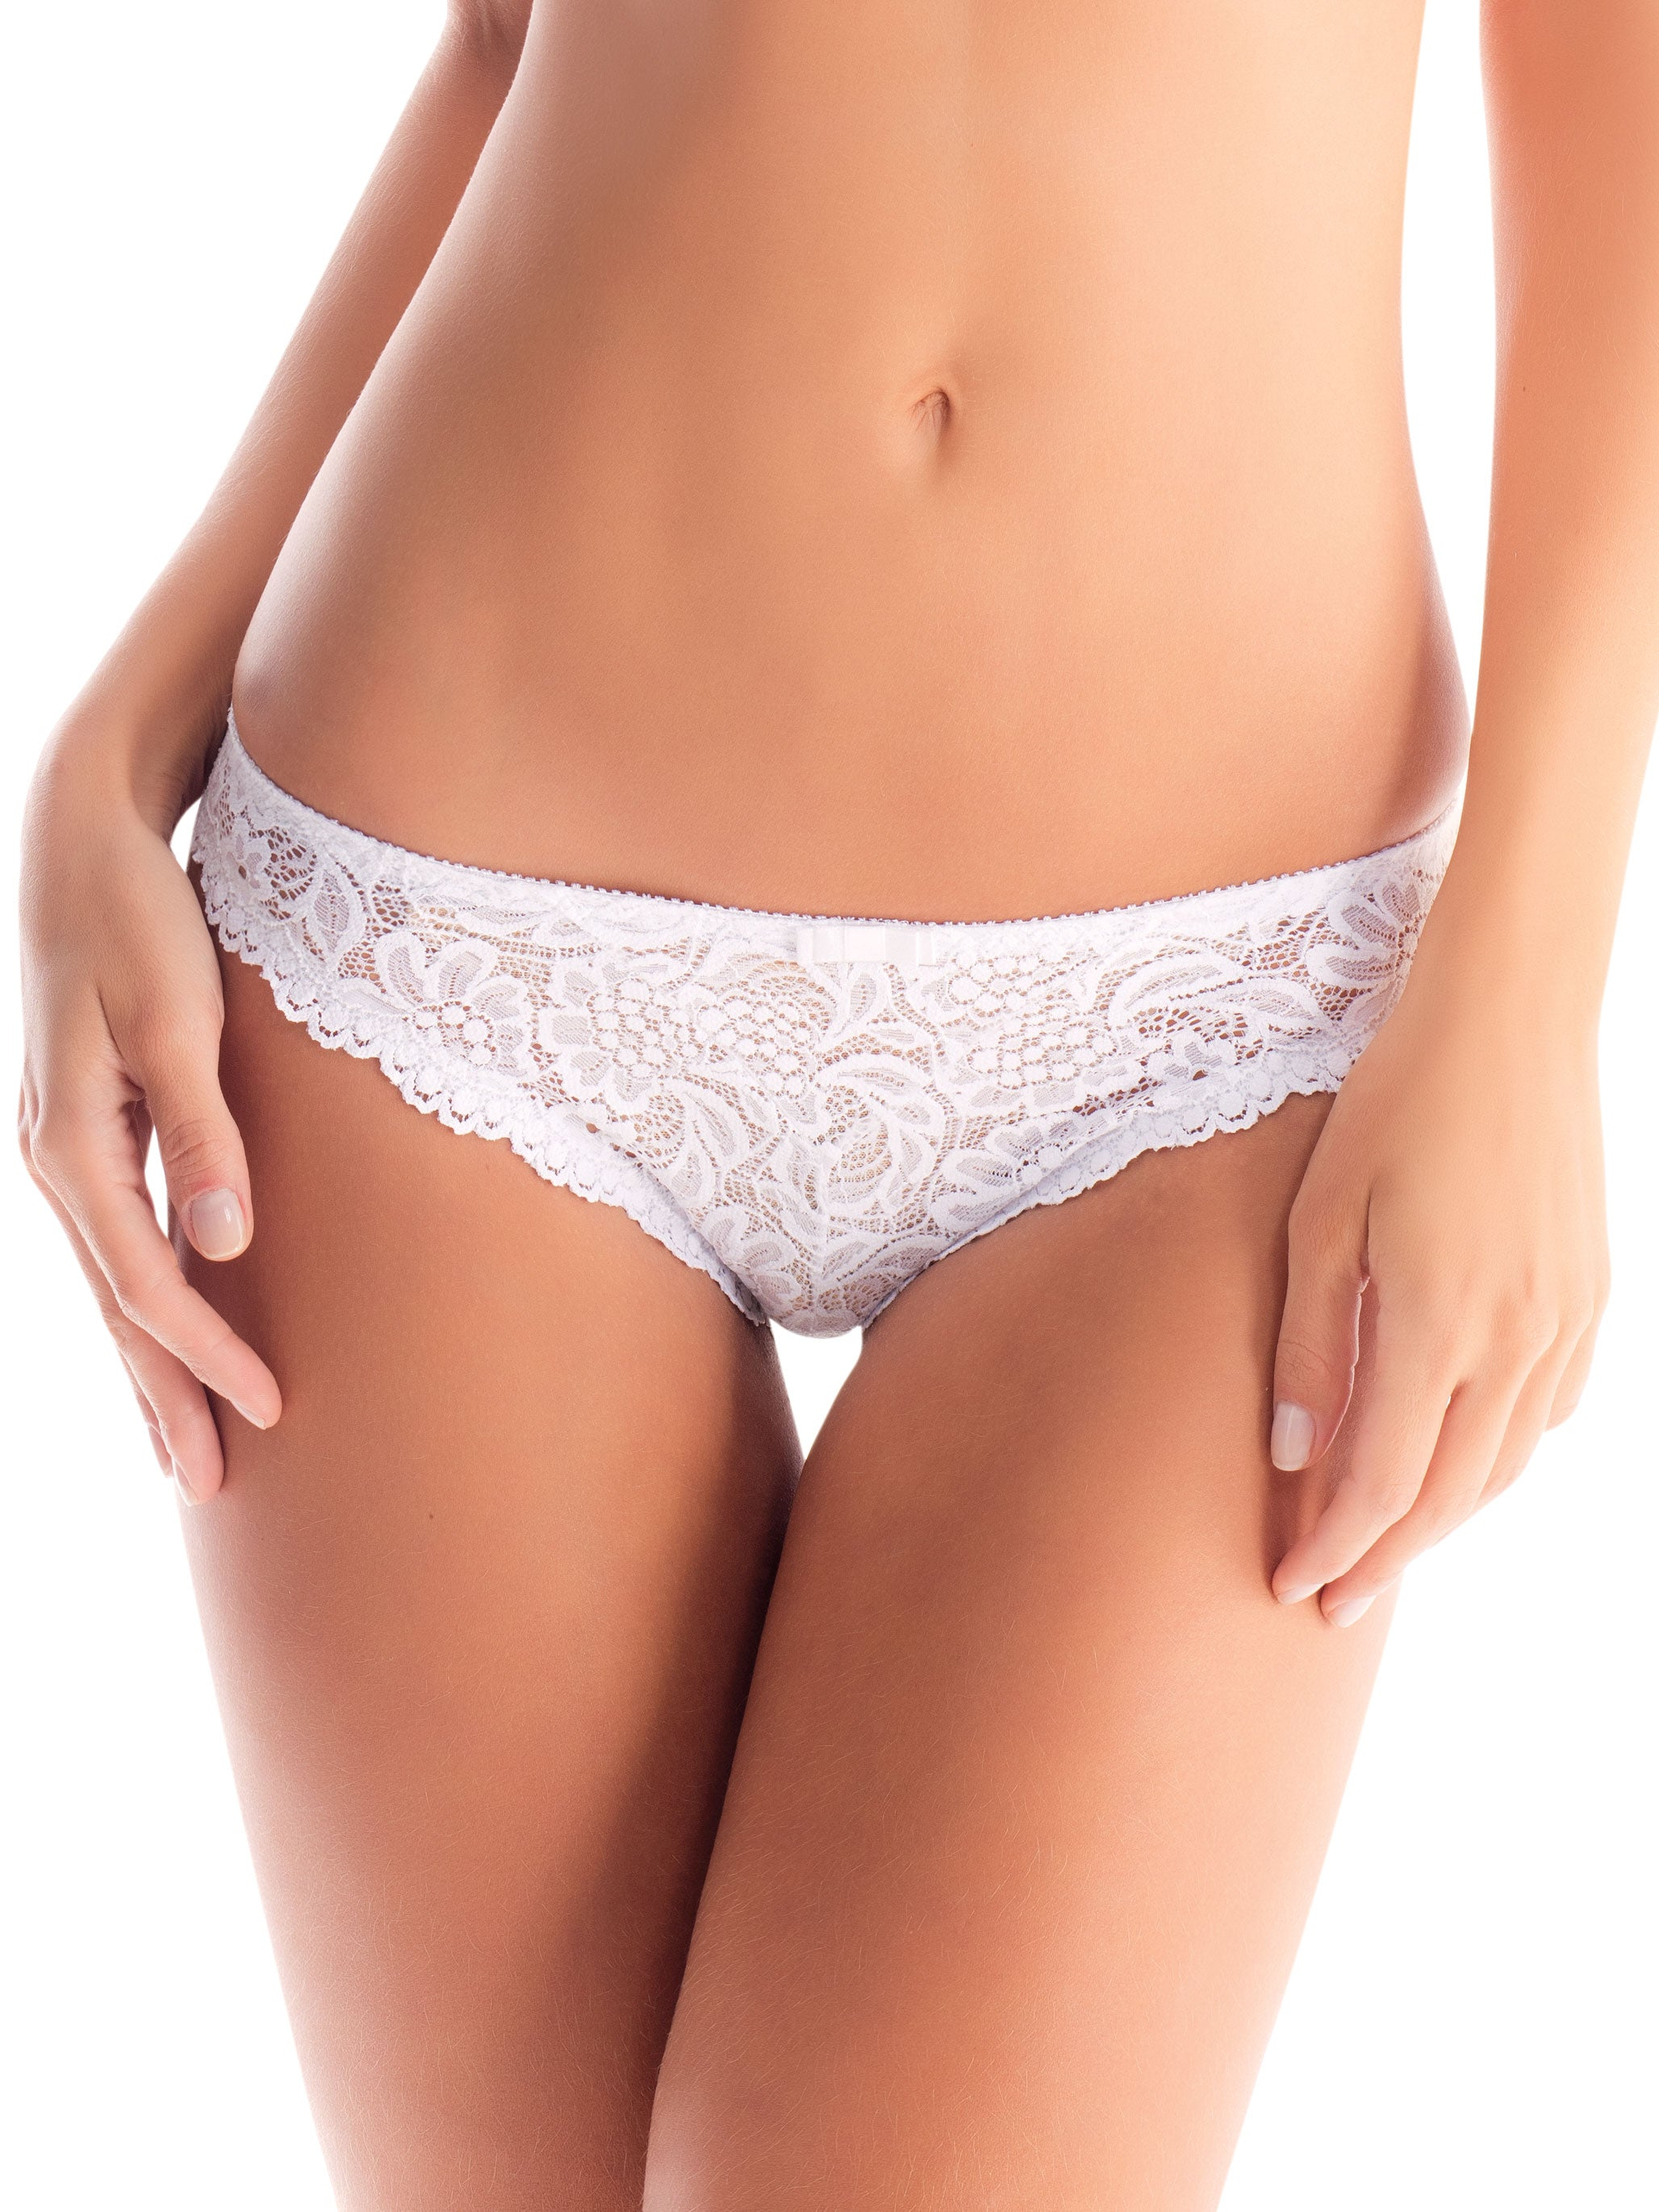 Ilusion Classic Lace Panty 2141